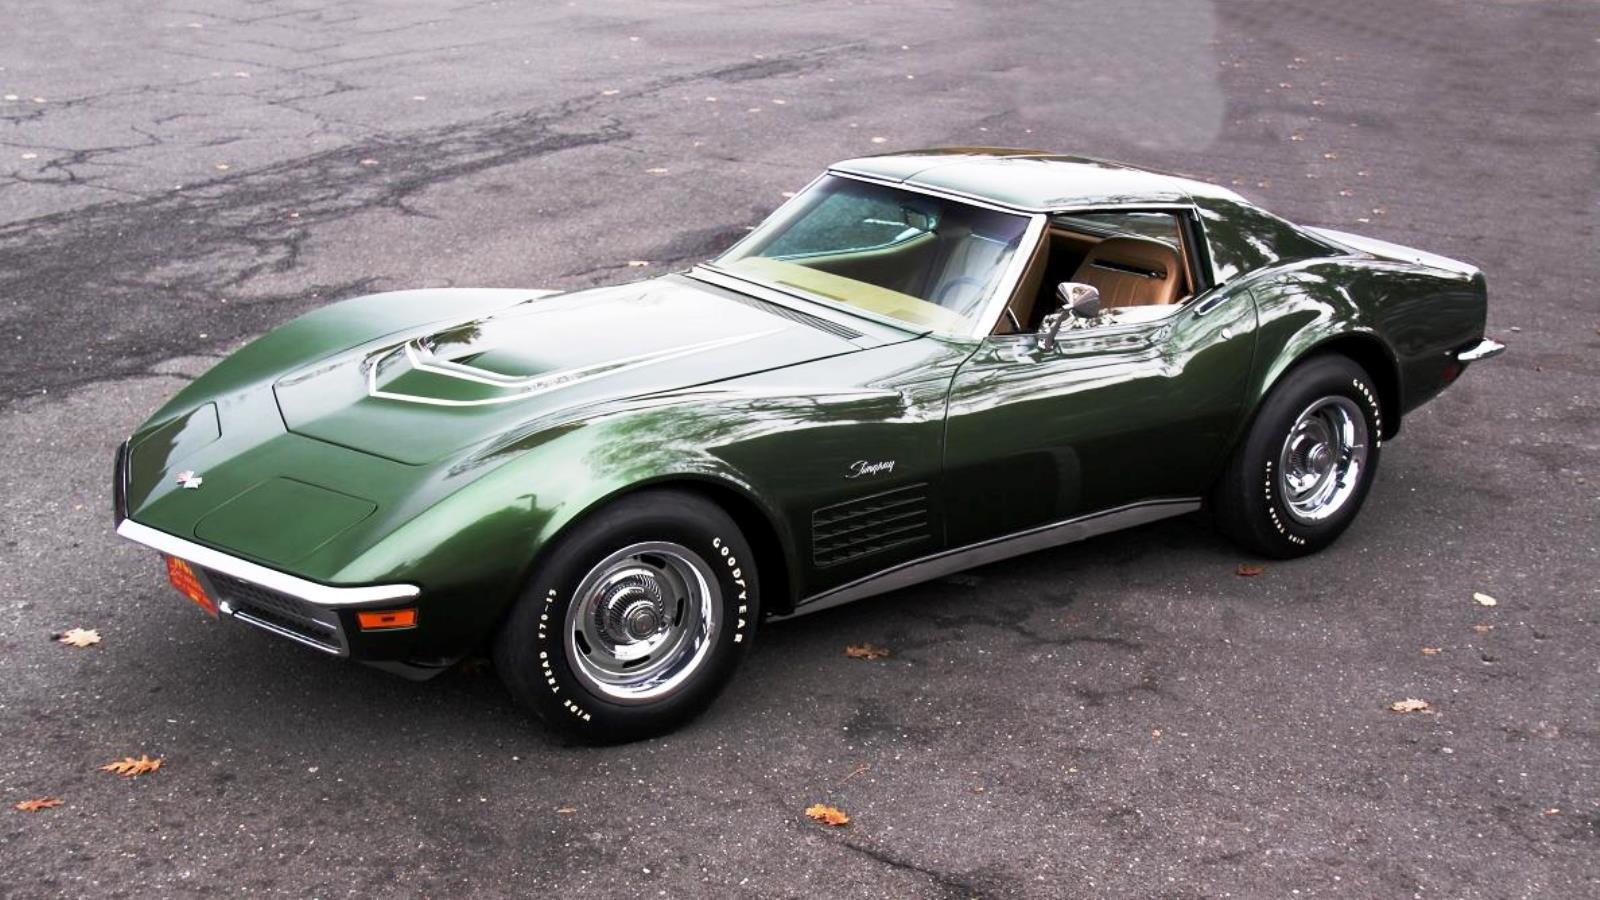 St. Patrick's Day Celebrates the Most Classic Green Corvettes